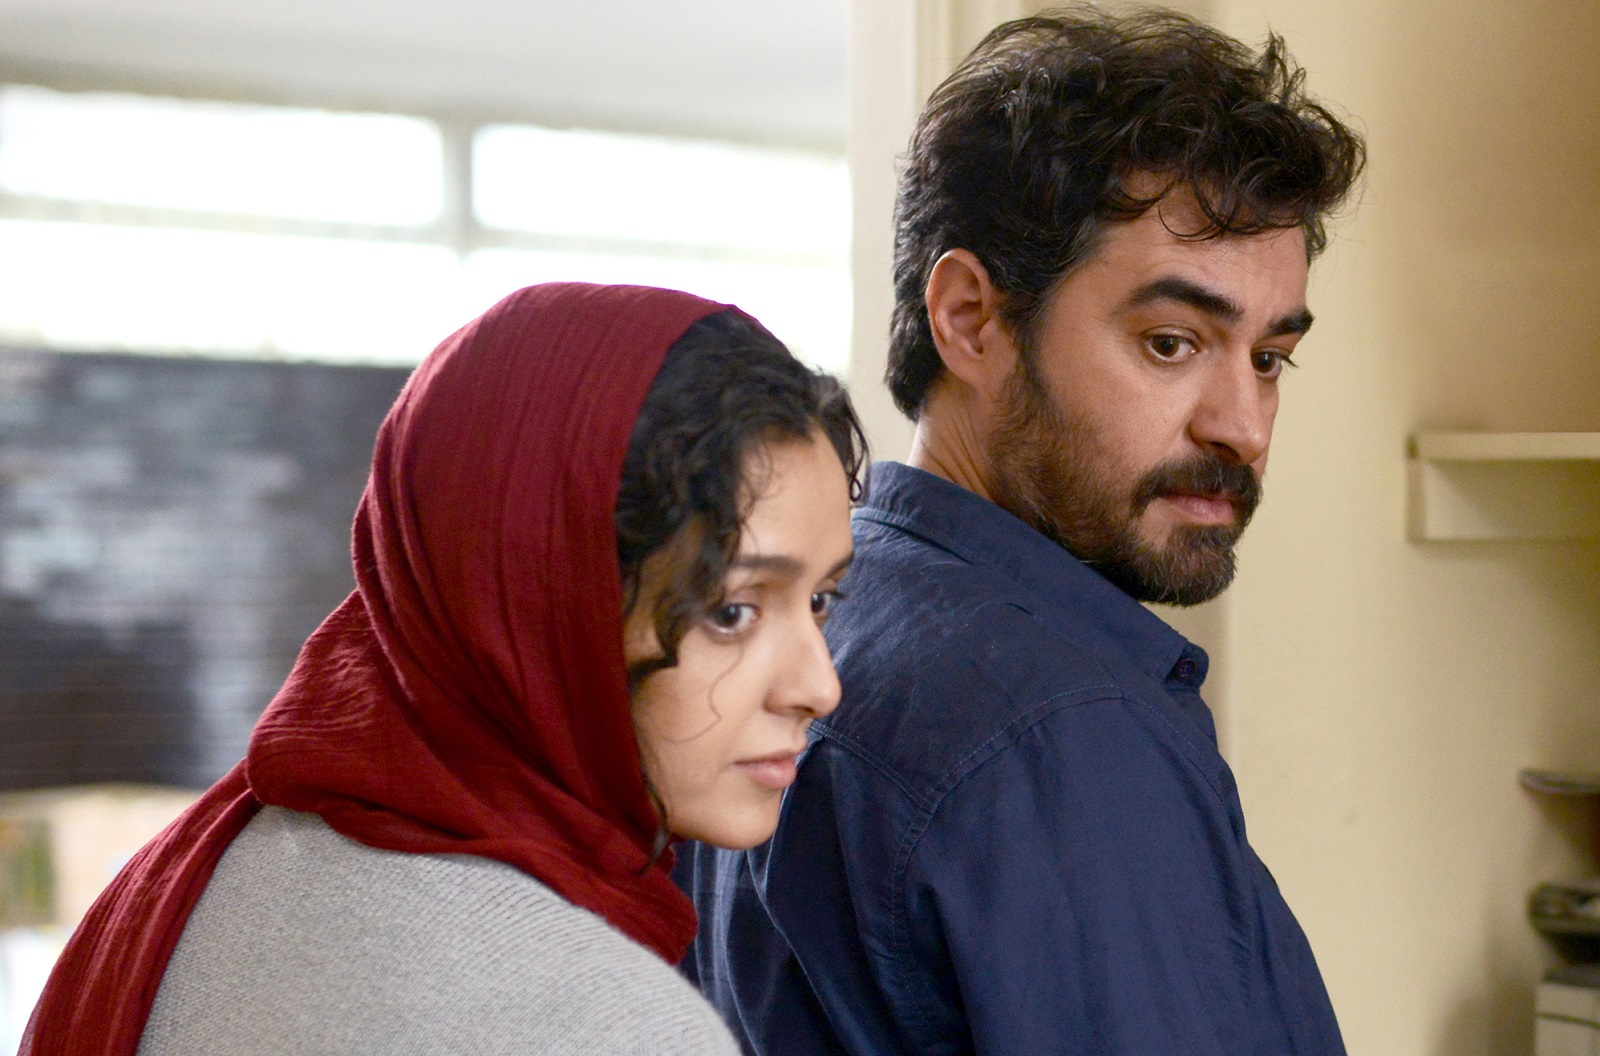 Rana (Taraneh Alidoosti), left, and Emad (Shahab Hosseini) are forced to relocate in 'The Salesman,' which has unexpected - and unsavory - side effects. (Habib Majidi/Cohen Media Group)